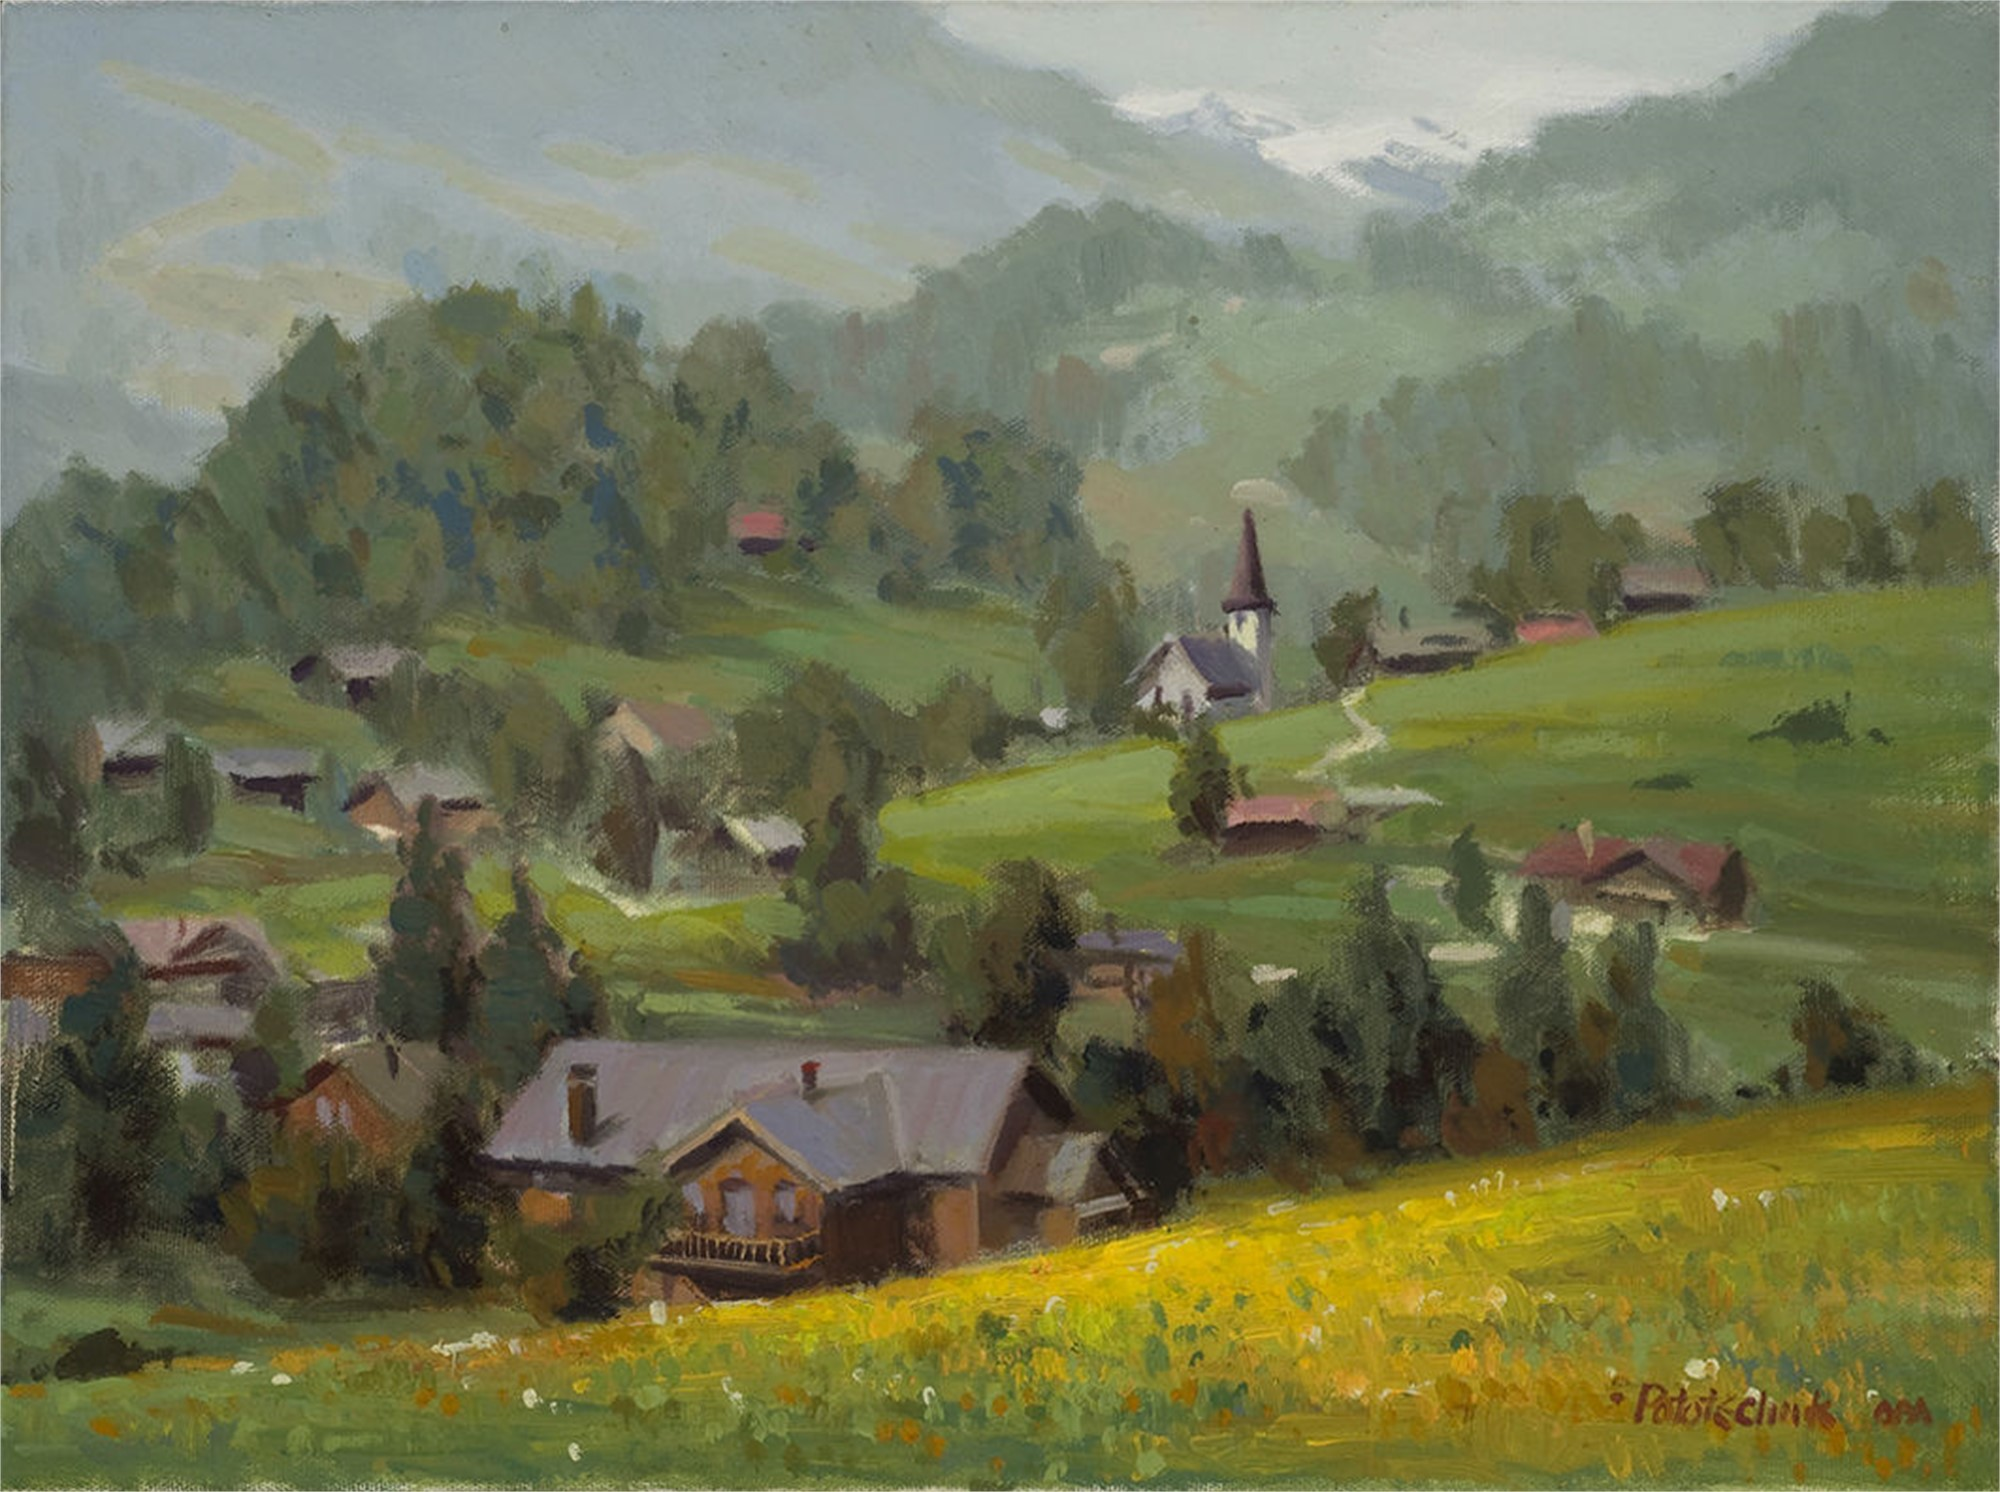 The Hills are Alive by John Pototschnik